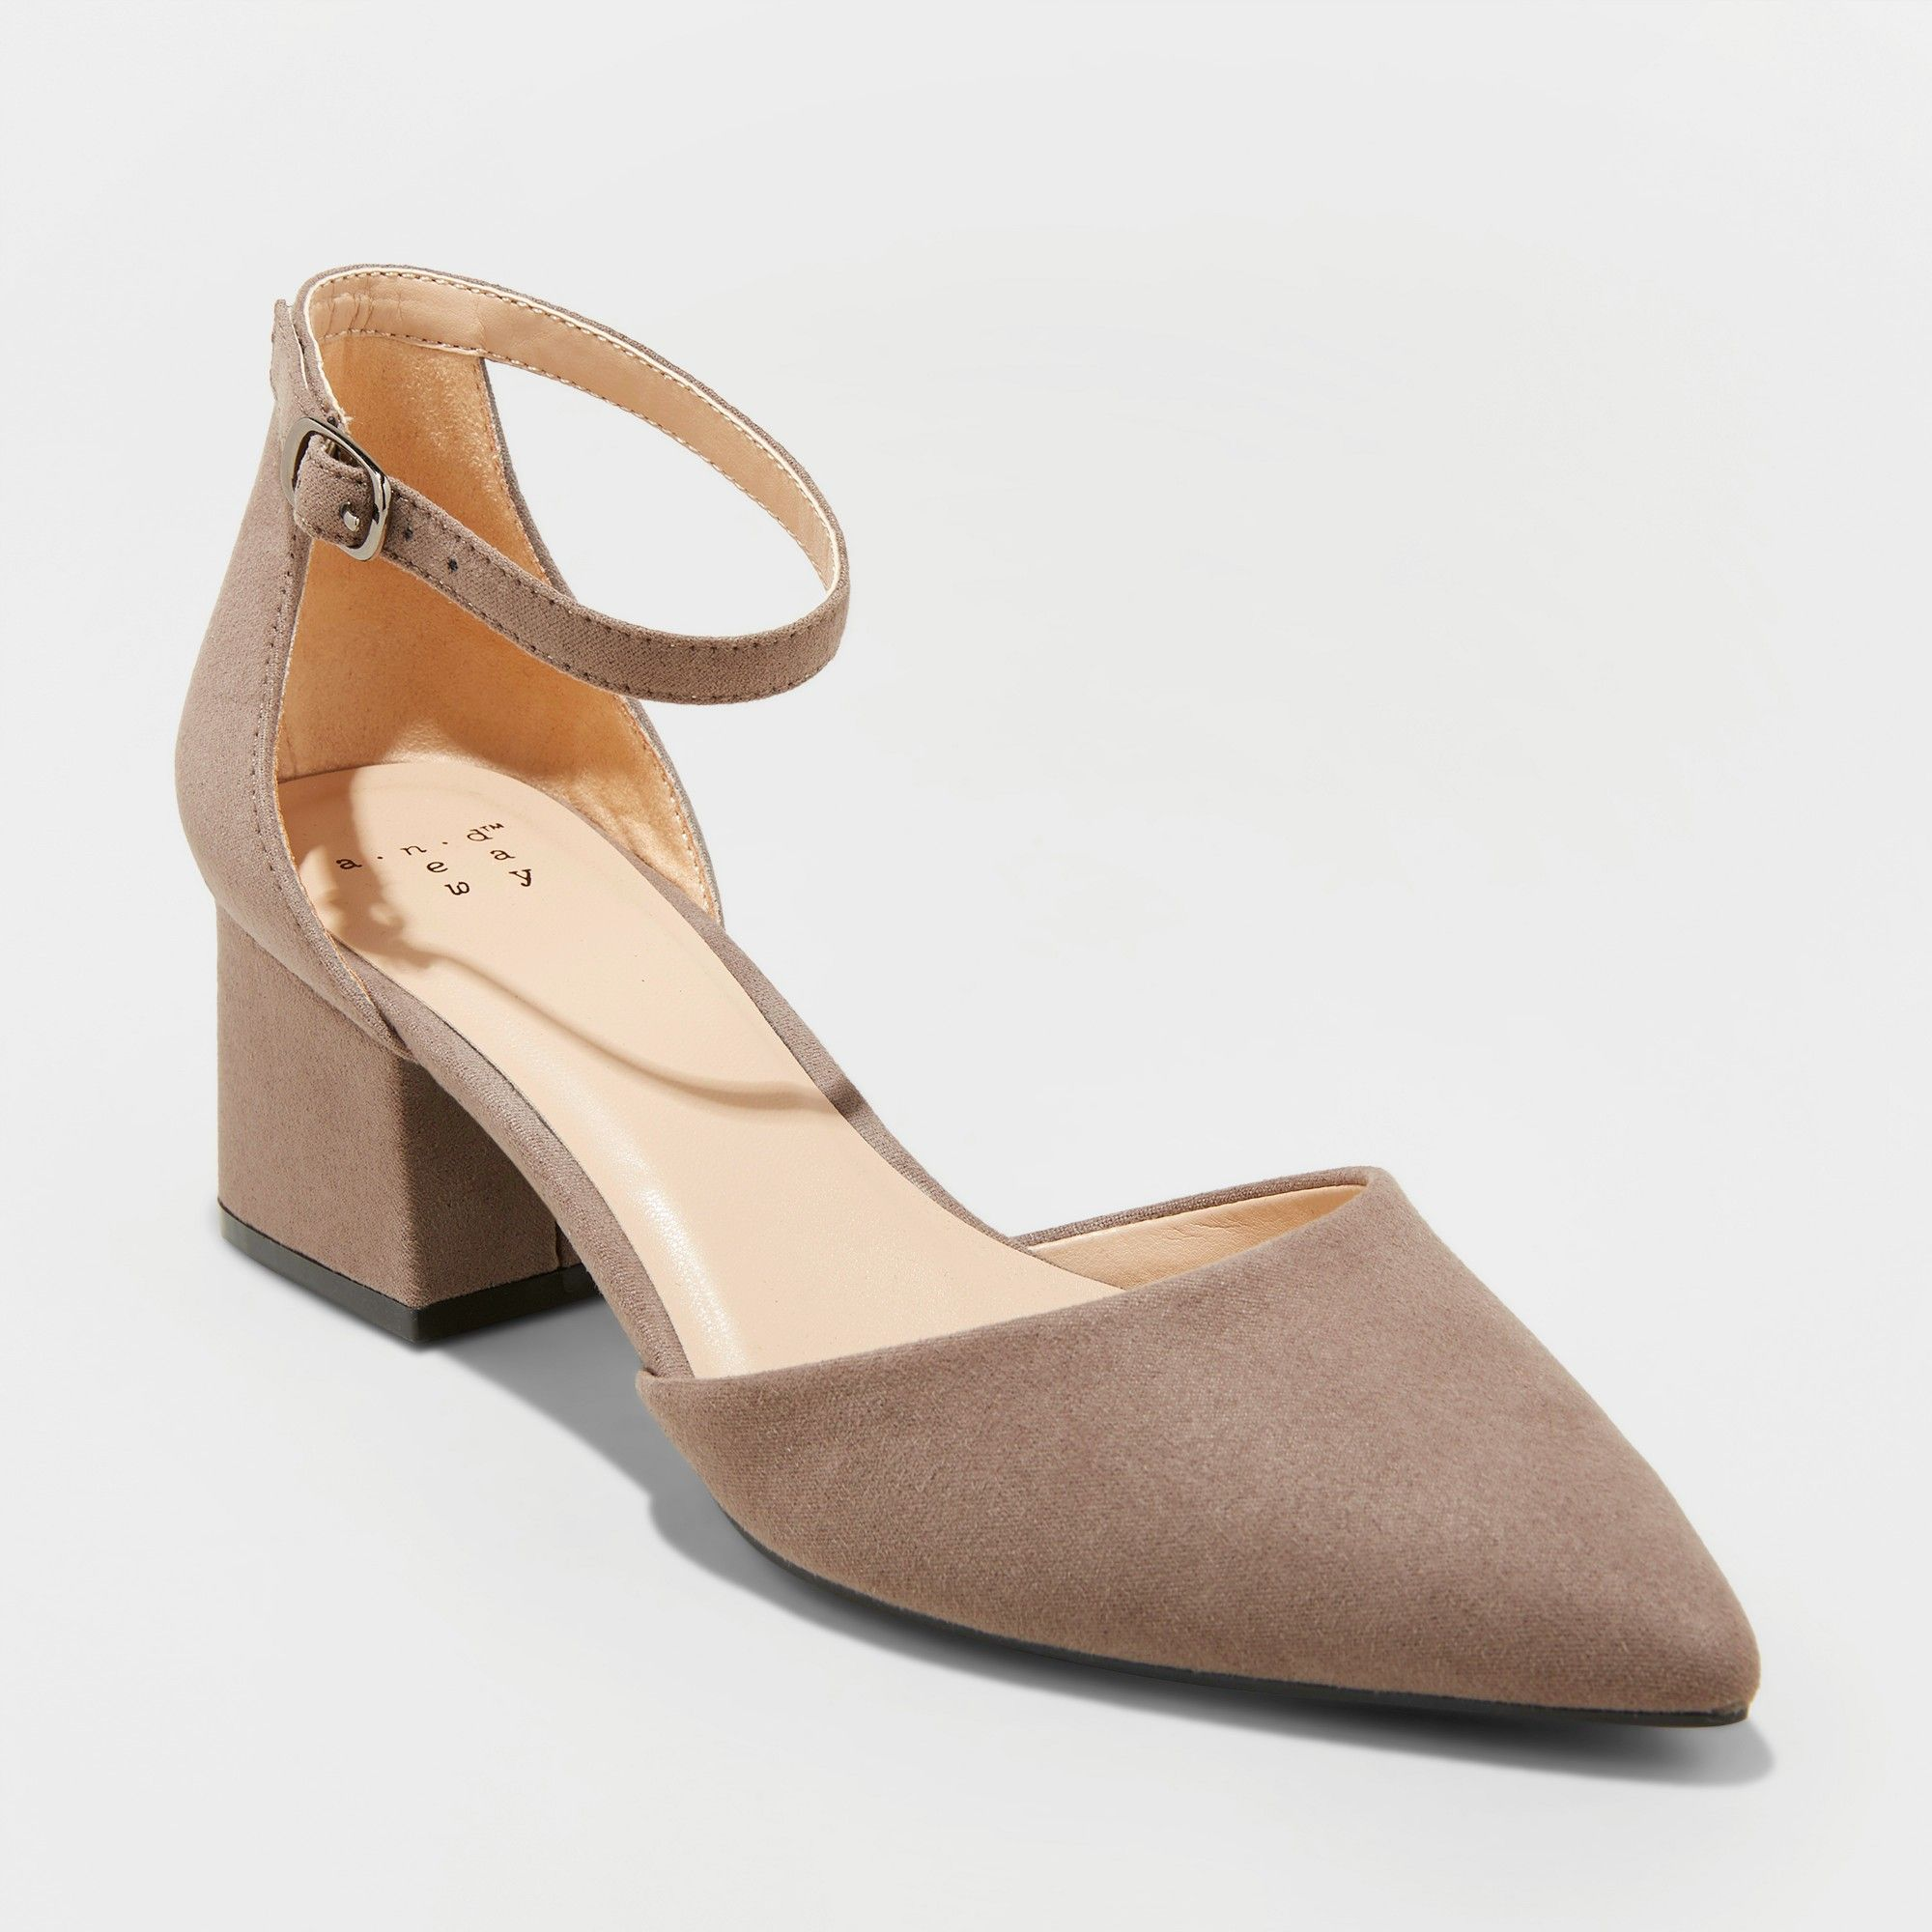 9bf880e94a8 Women s Natalia Wide Width Microsuede Pointed Toe Block Heeled Pumps - A  New Day Taupe (Brown) 5W